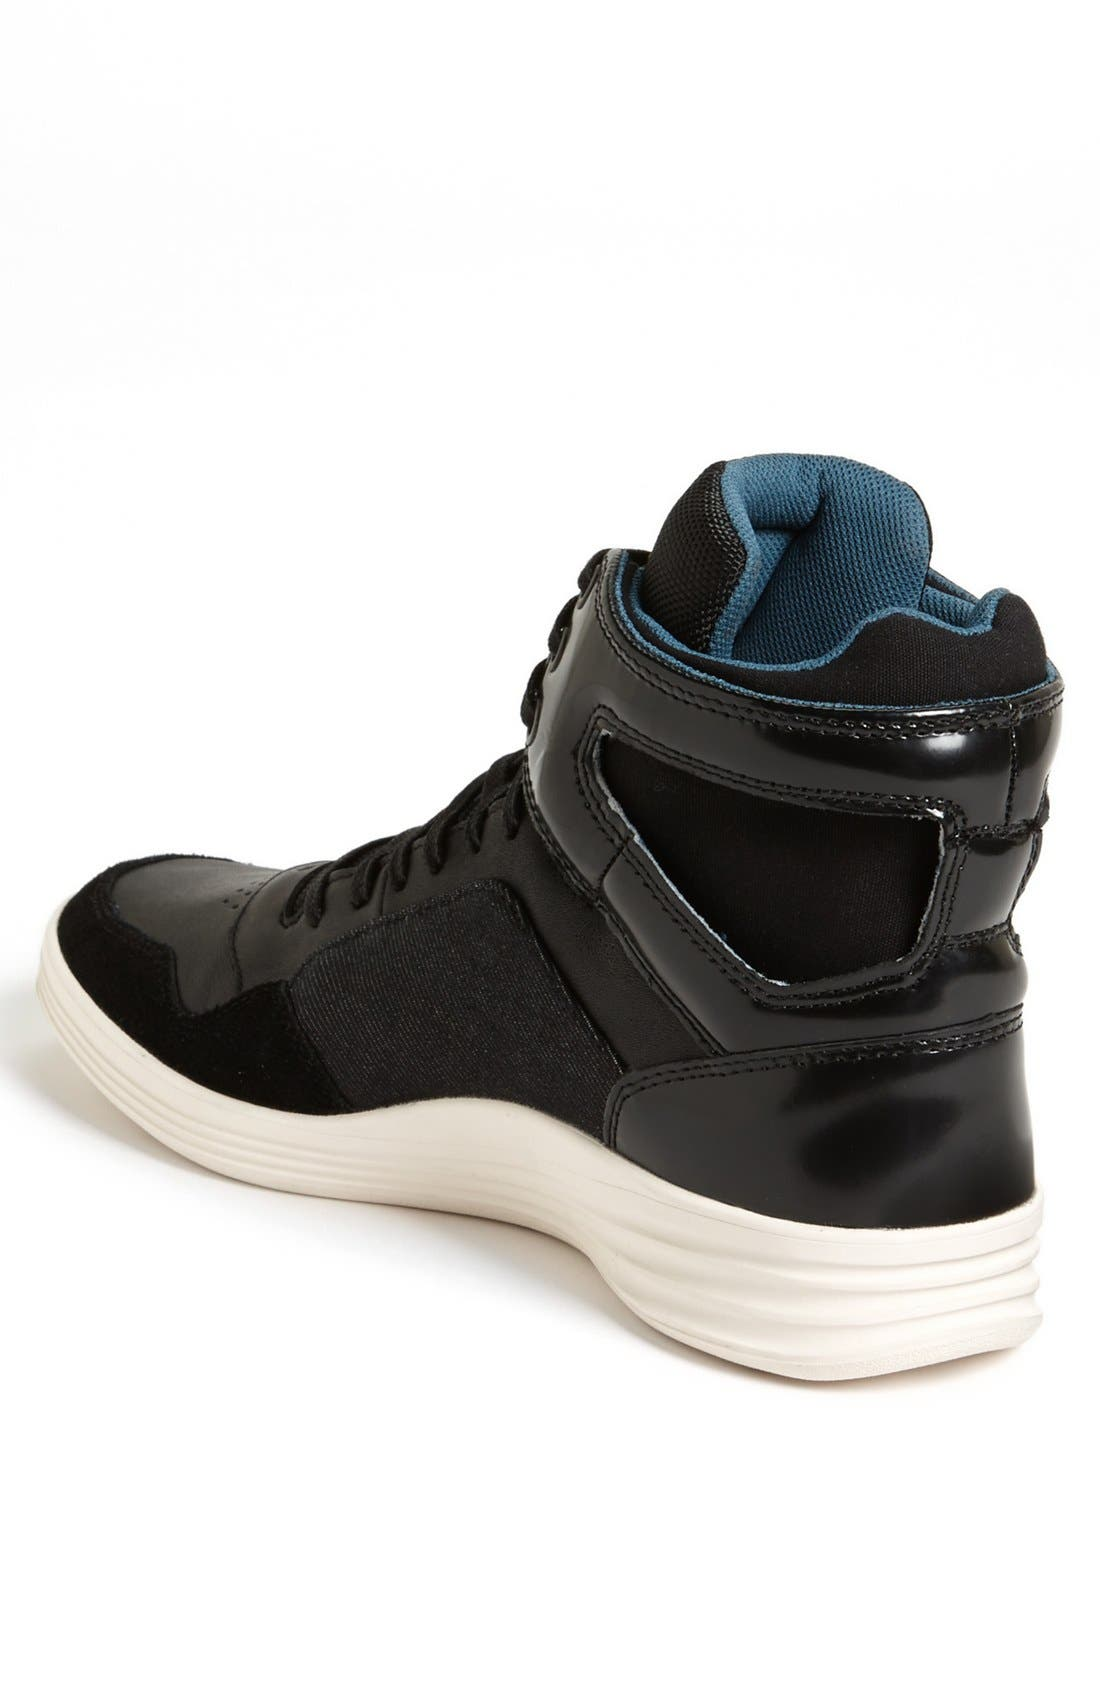 Alternate Image 2  - G-Star Raw 'Futura Outland' Sneaker